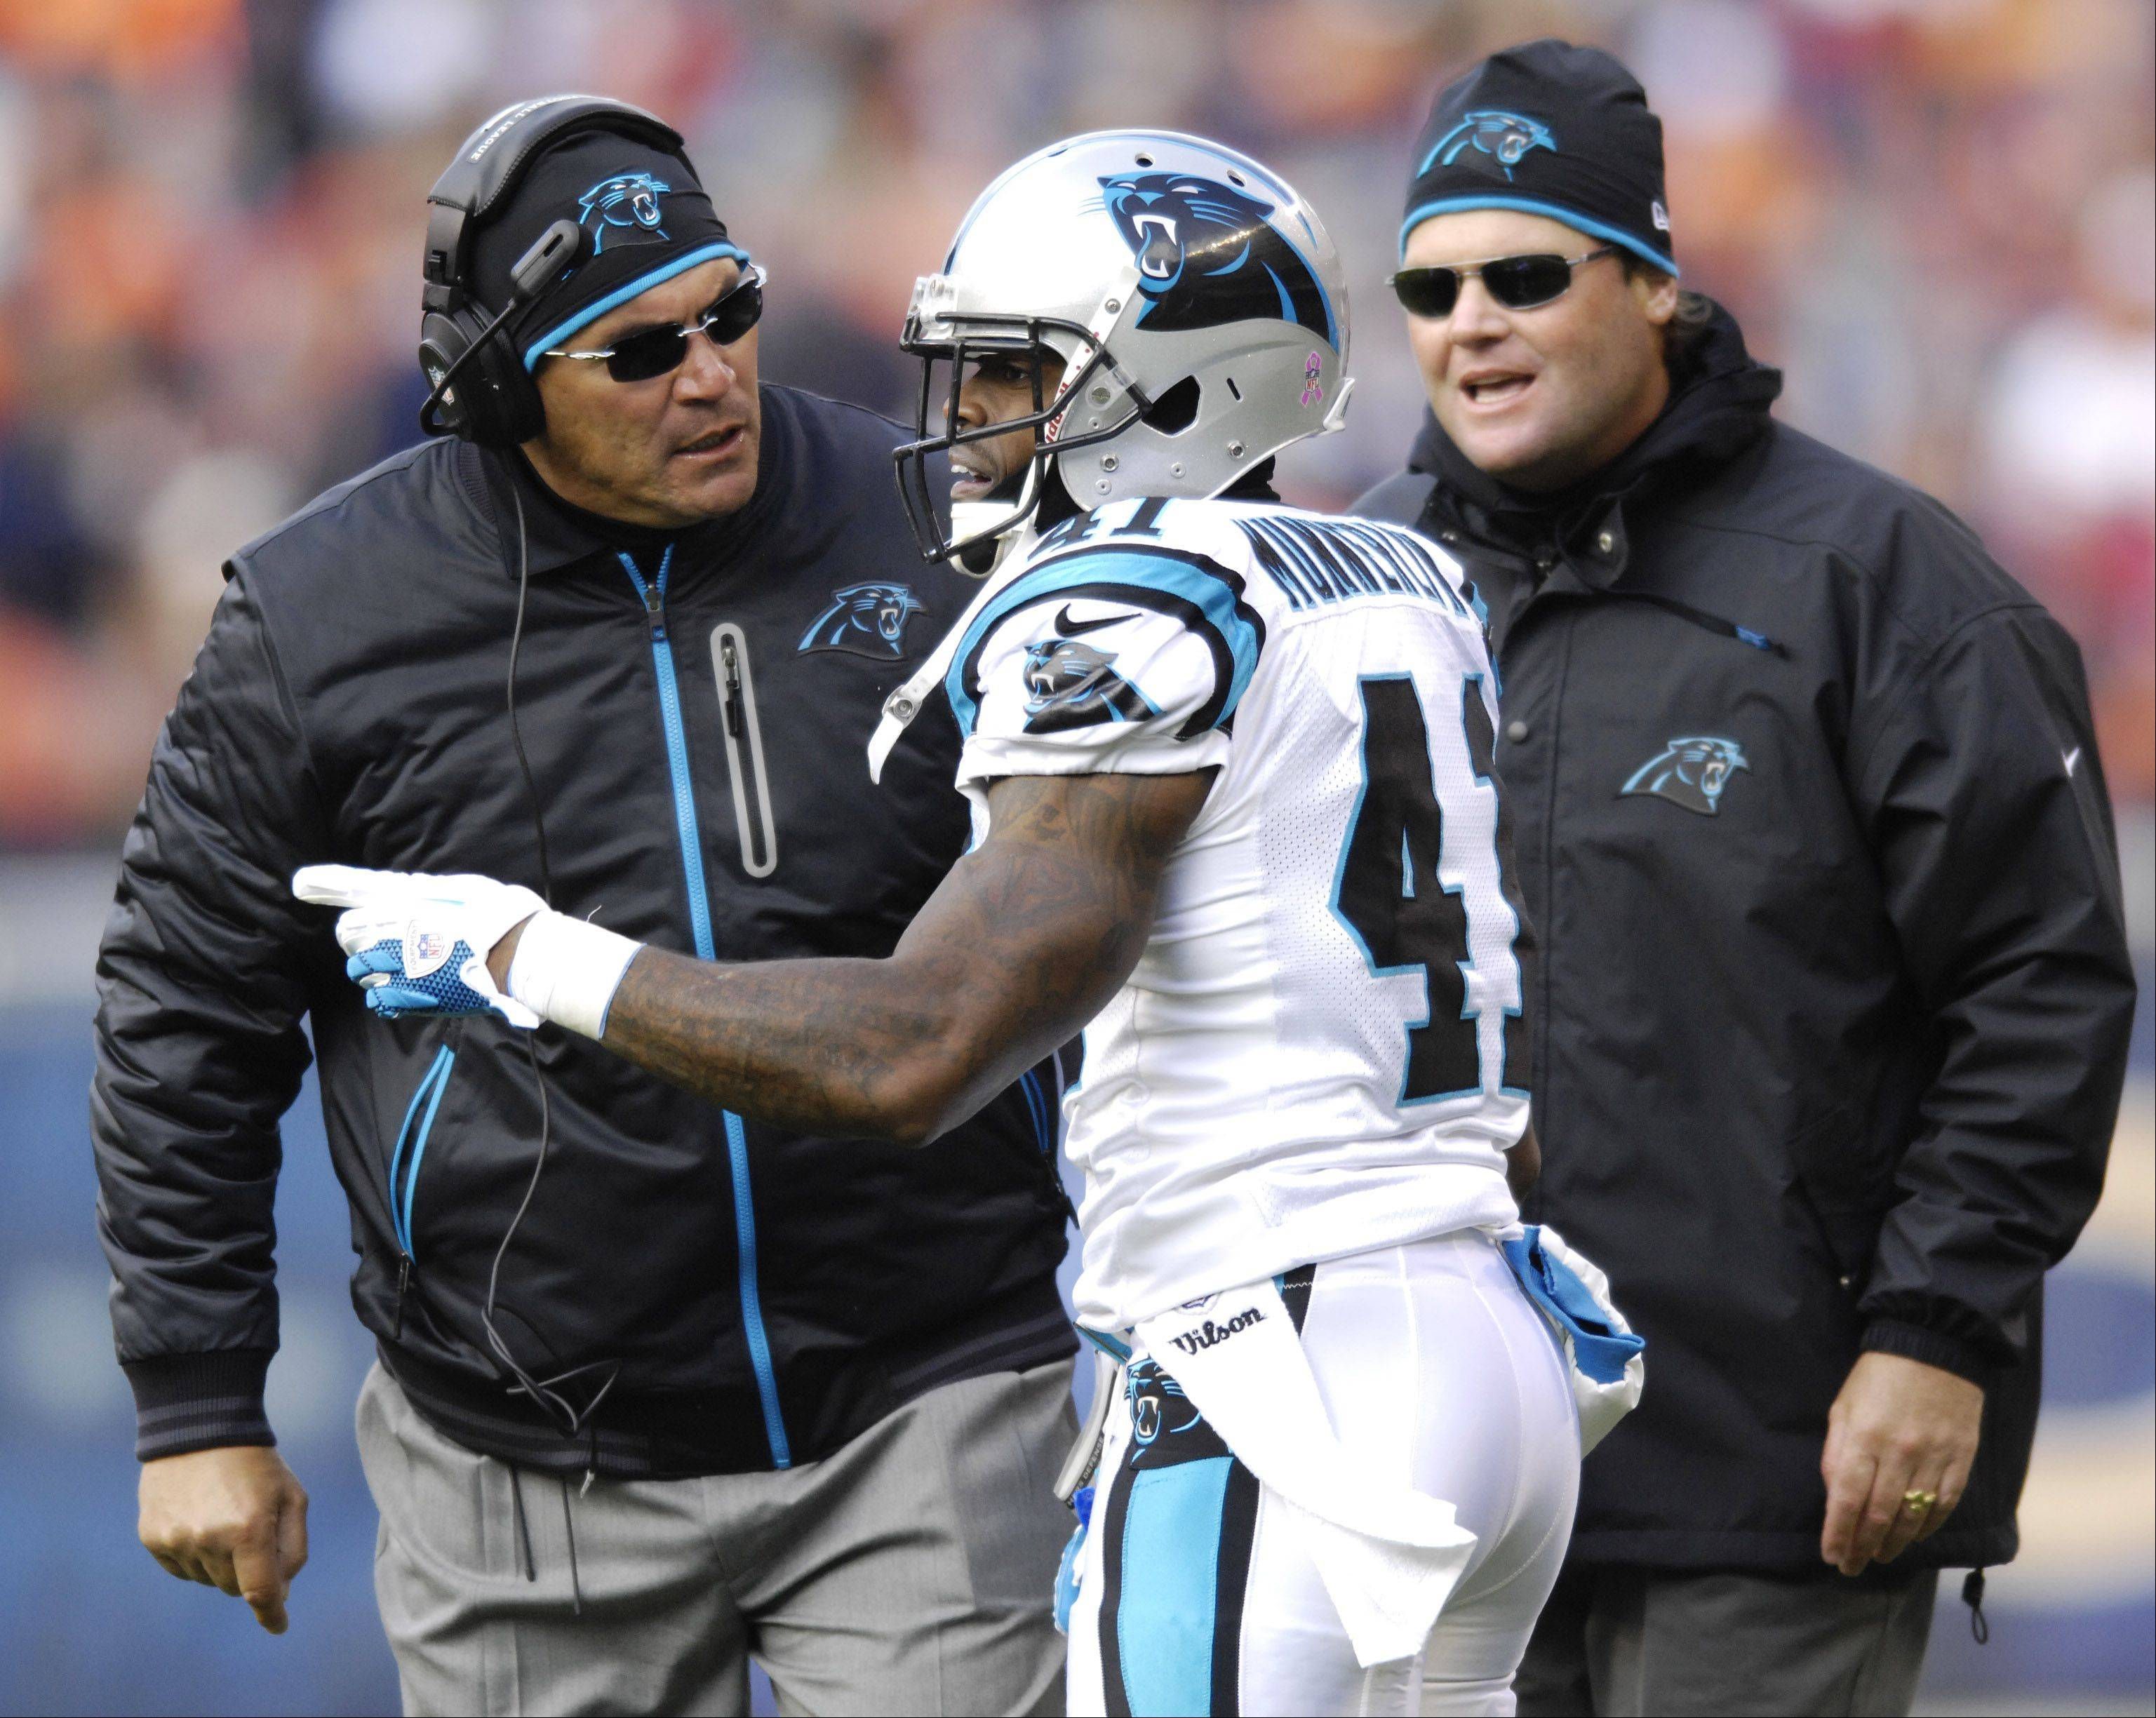 Carolina Panthers head coach Ron Rivera, left, talks with Carolina Panthers cornerback Captain Munnerlyn during Sunday's game against the Bears at Soldier Field.